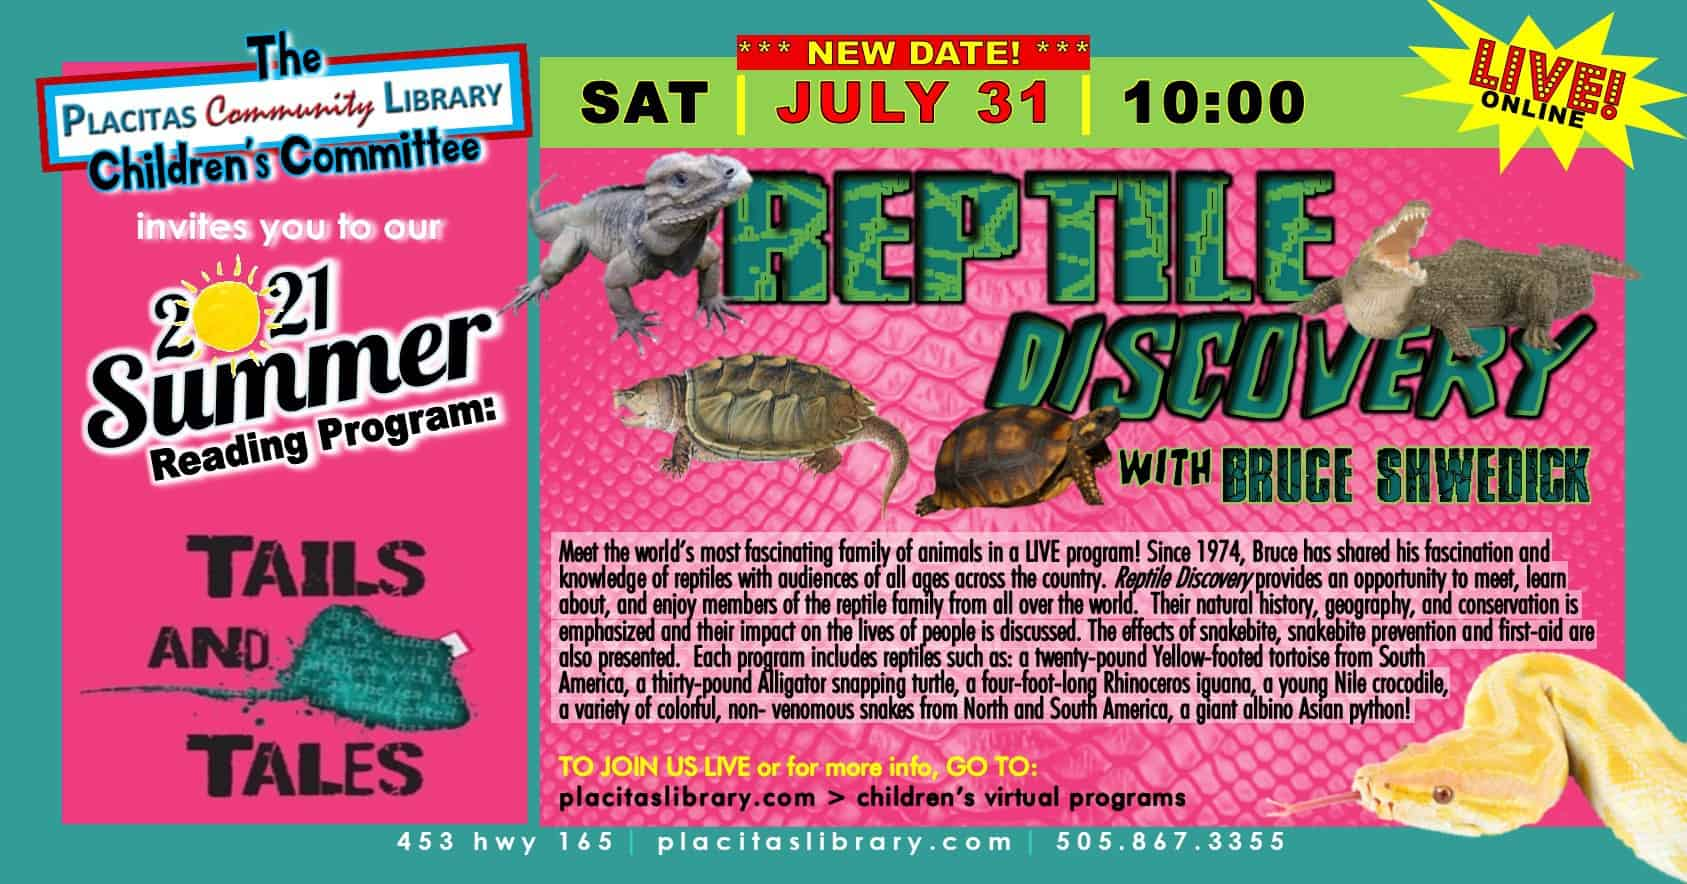 Reptile Discovery with Bruce Shwedick